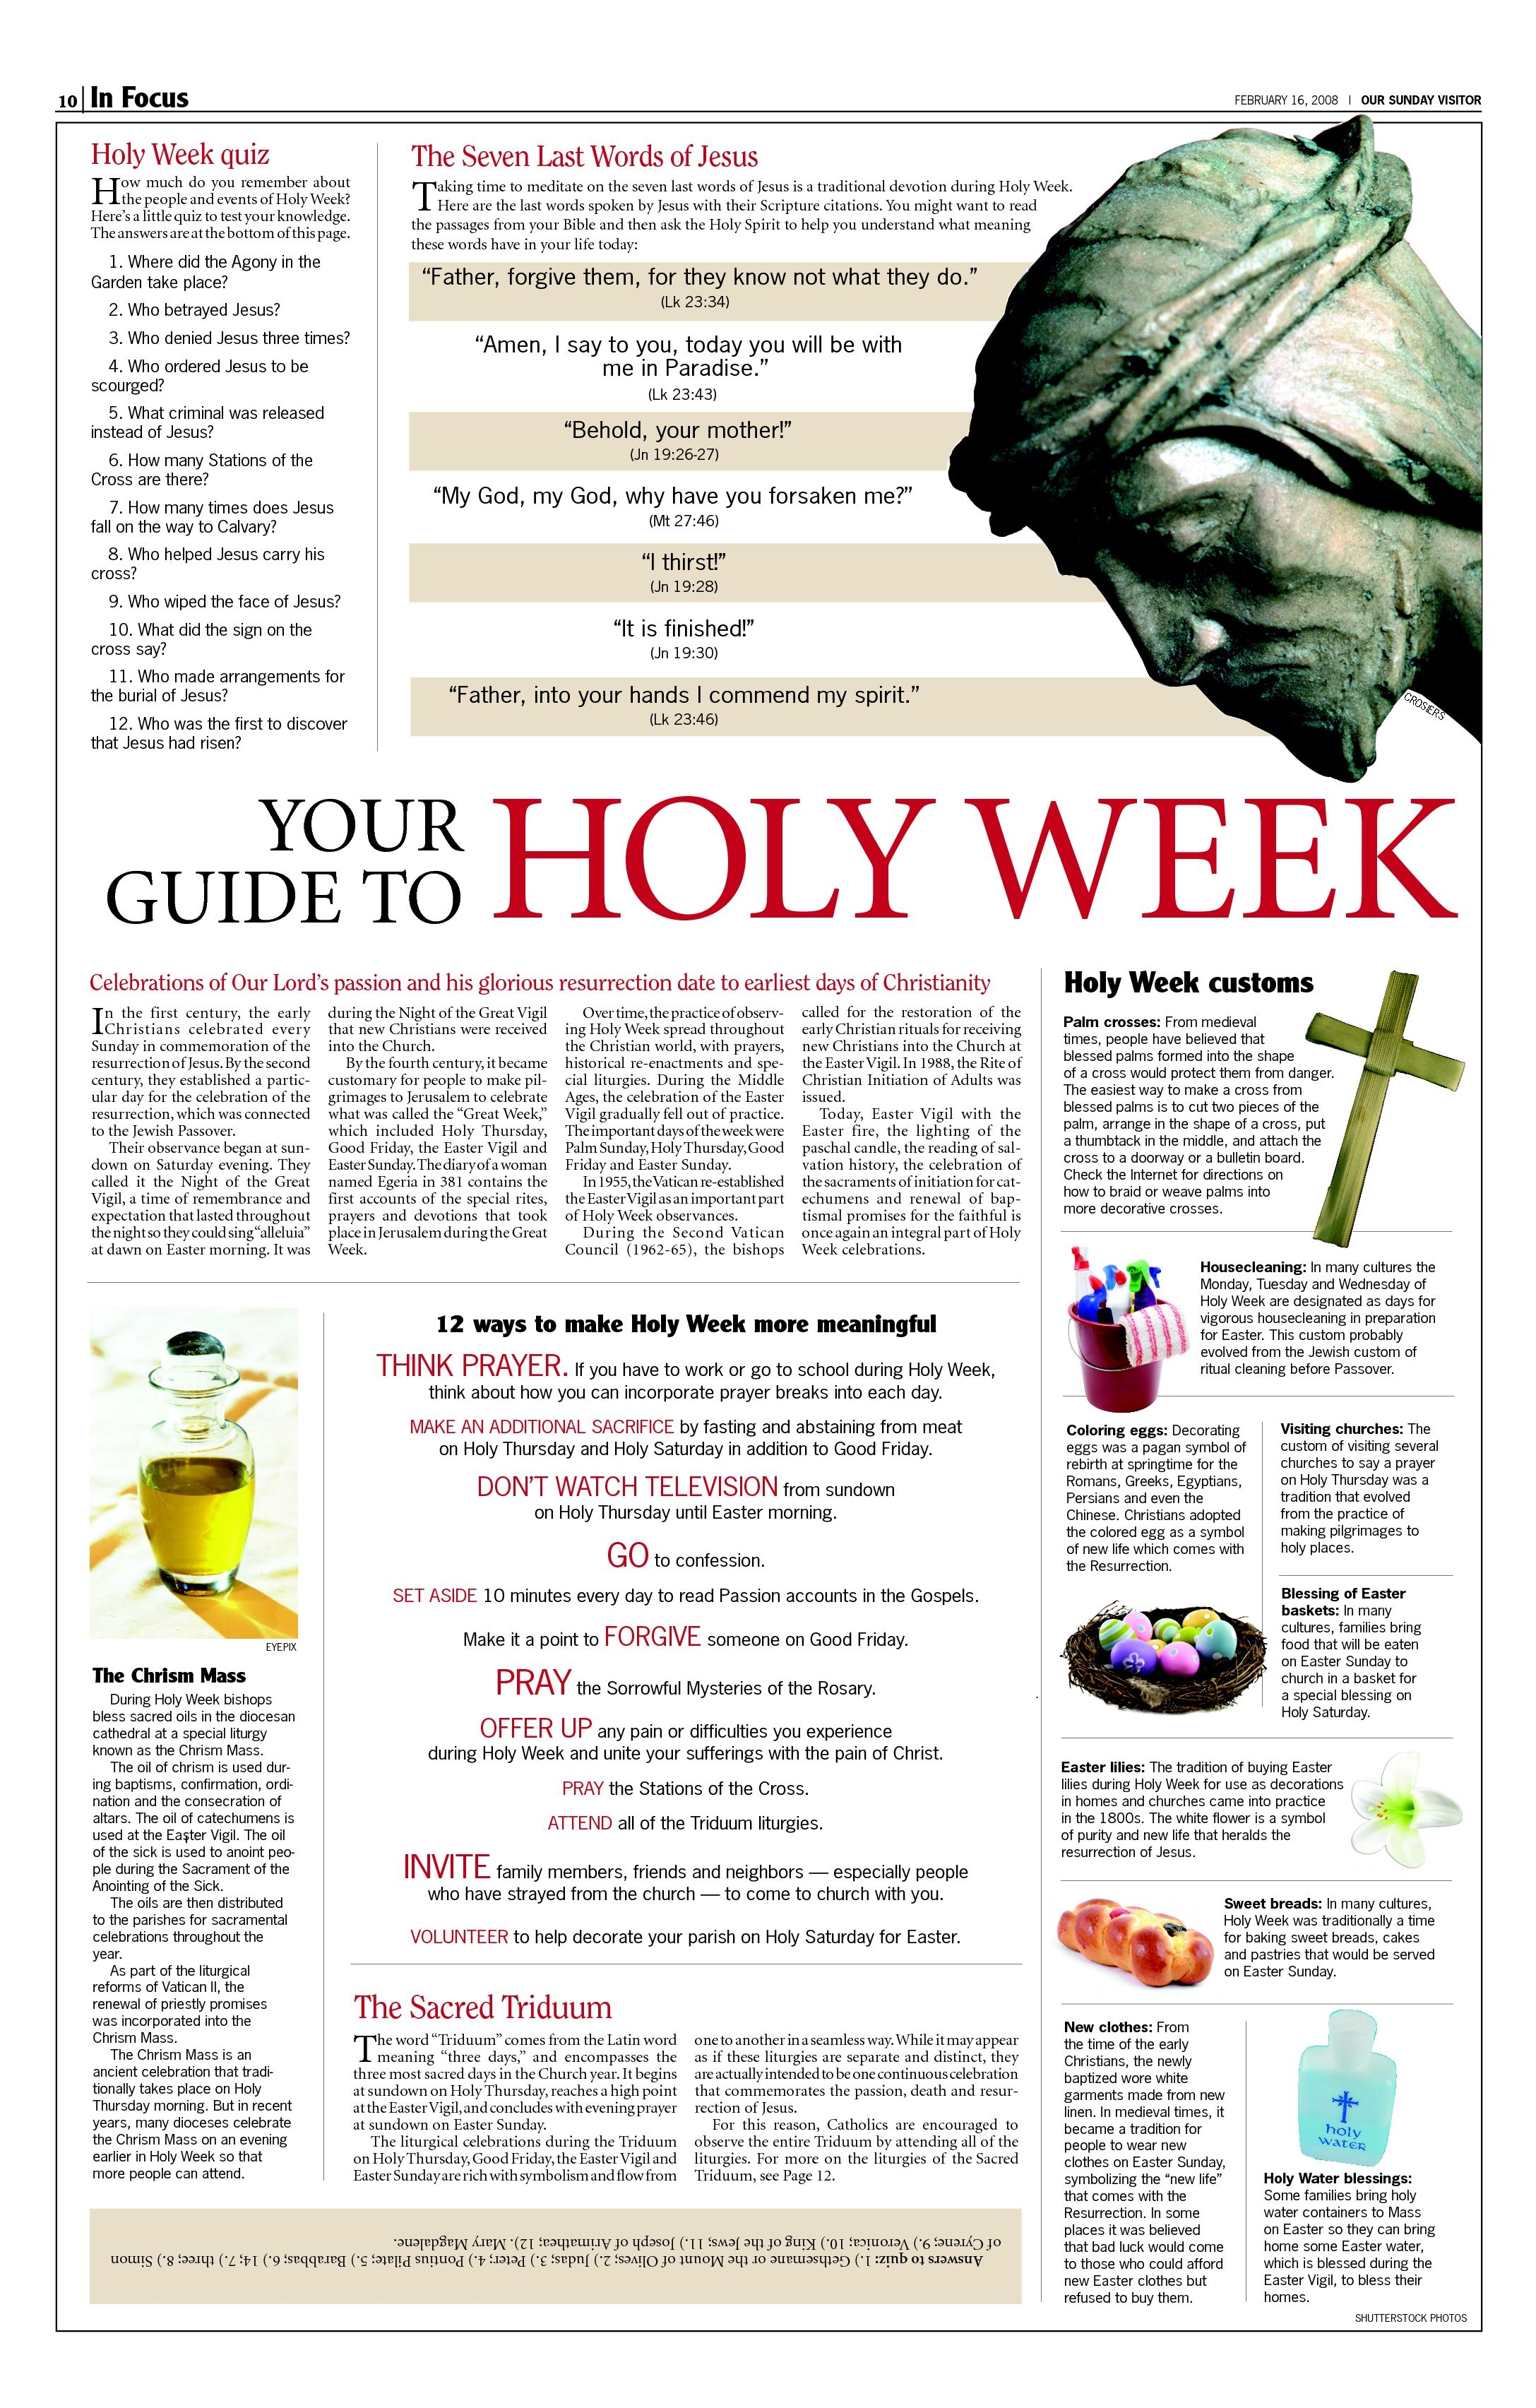 Holy Week! This Is A Catholic Document But Has Some Great